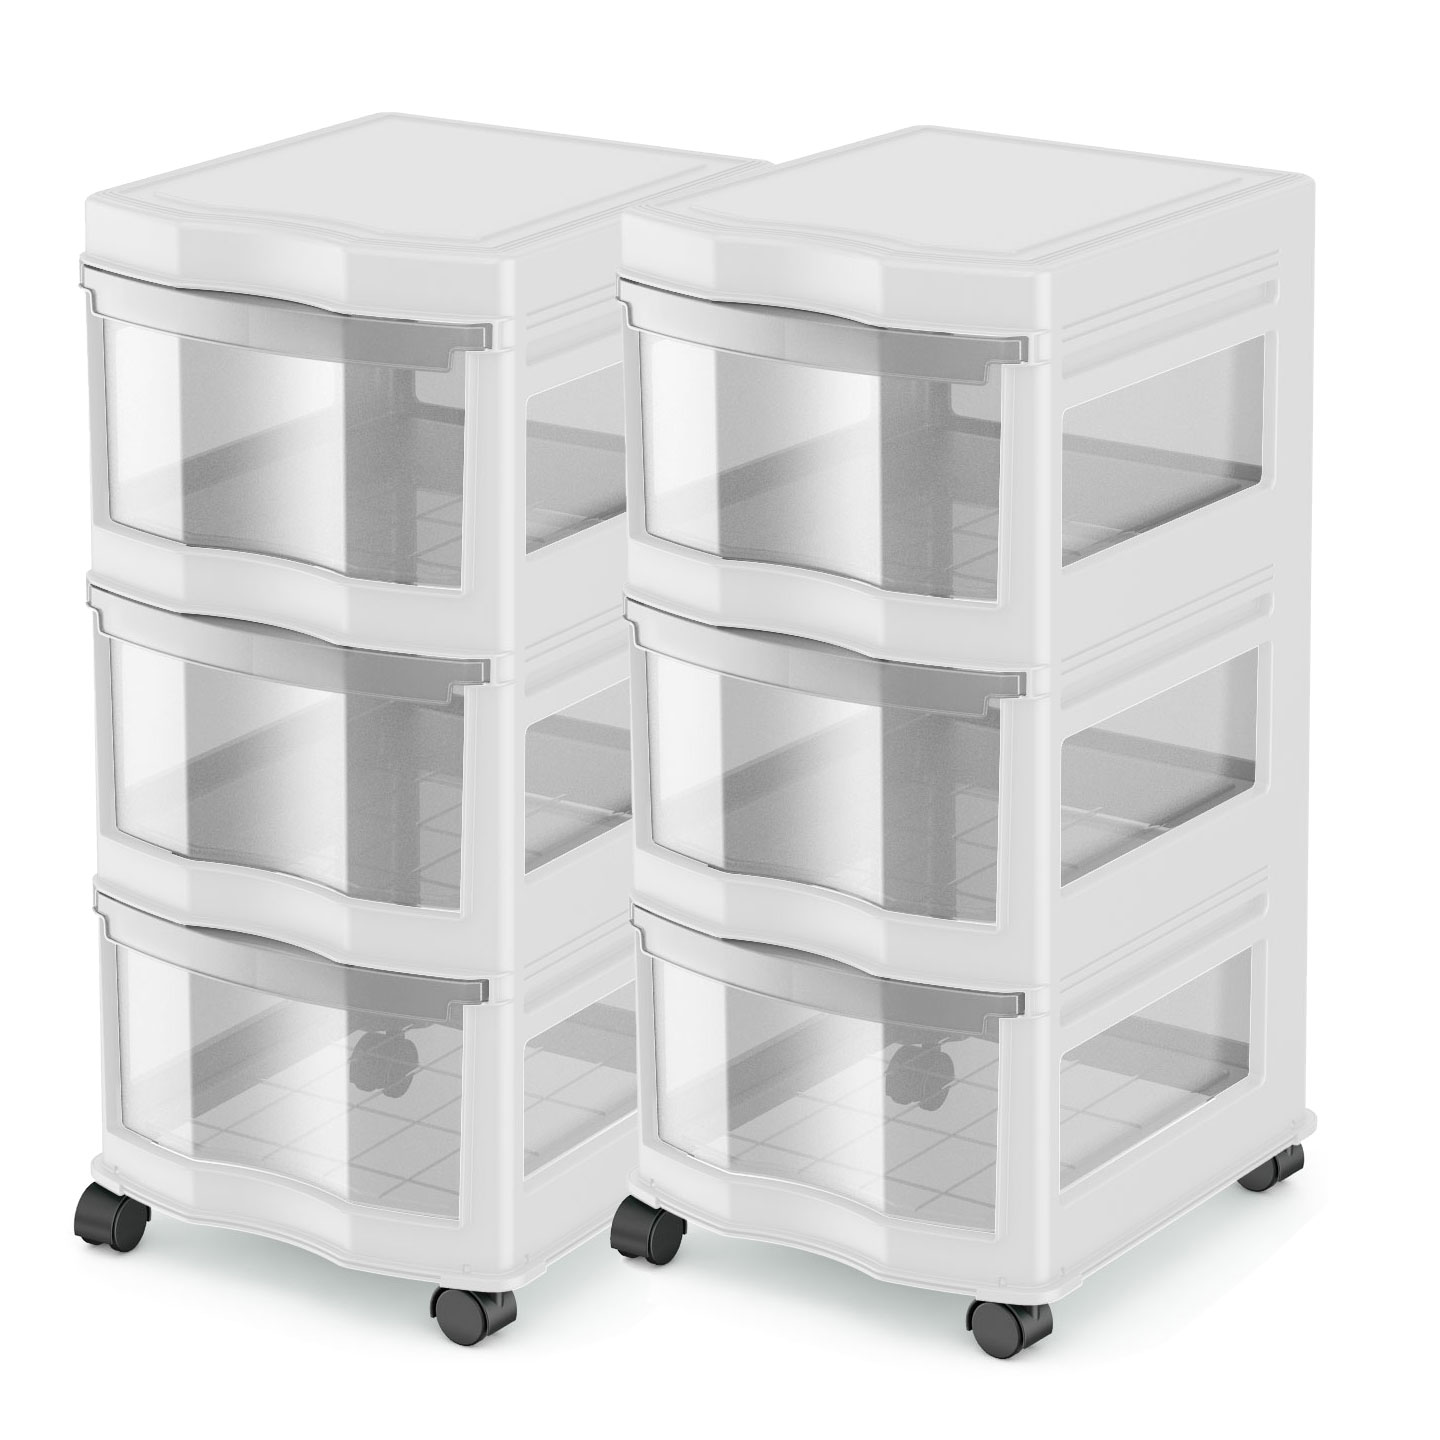 Life Story Classic 3 Shelf Storage Organizer Plastic Drawers, White (2 Pack) by Life Story